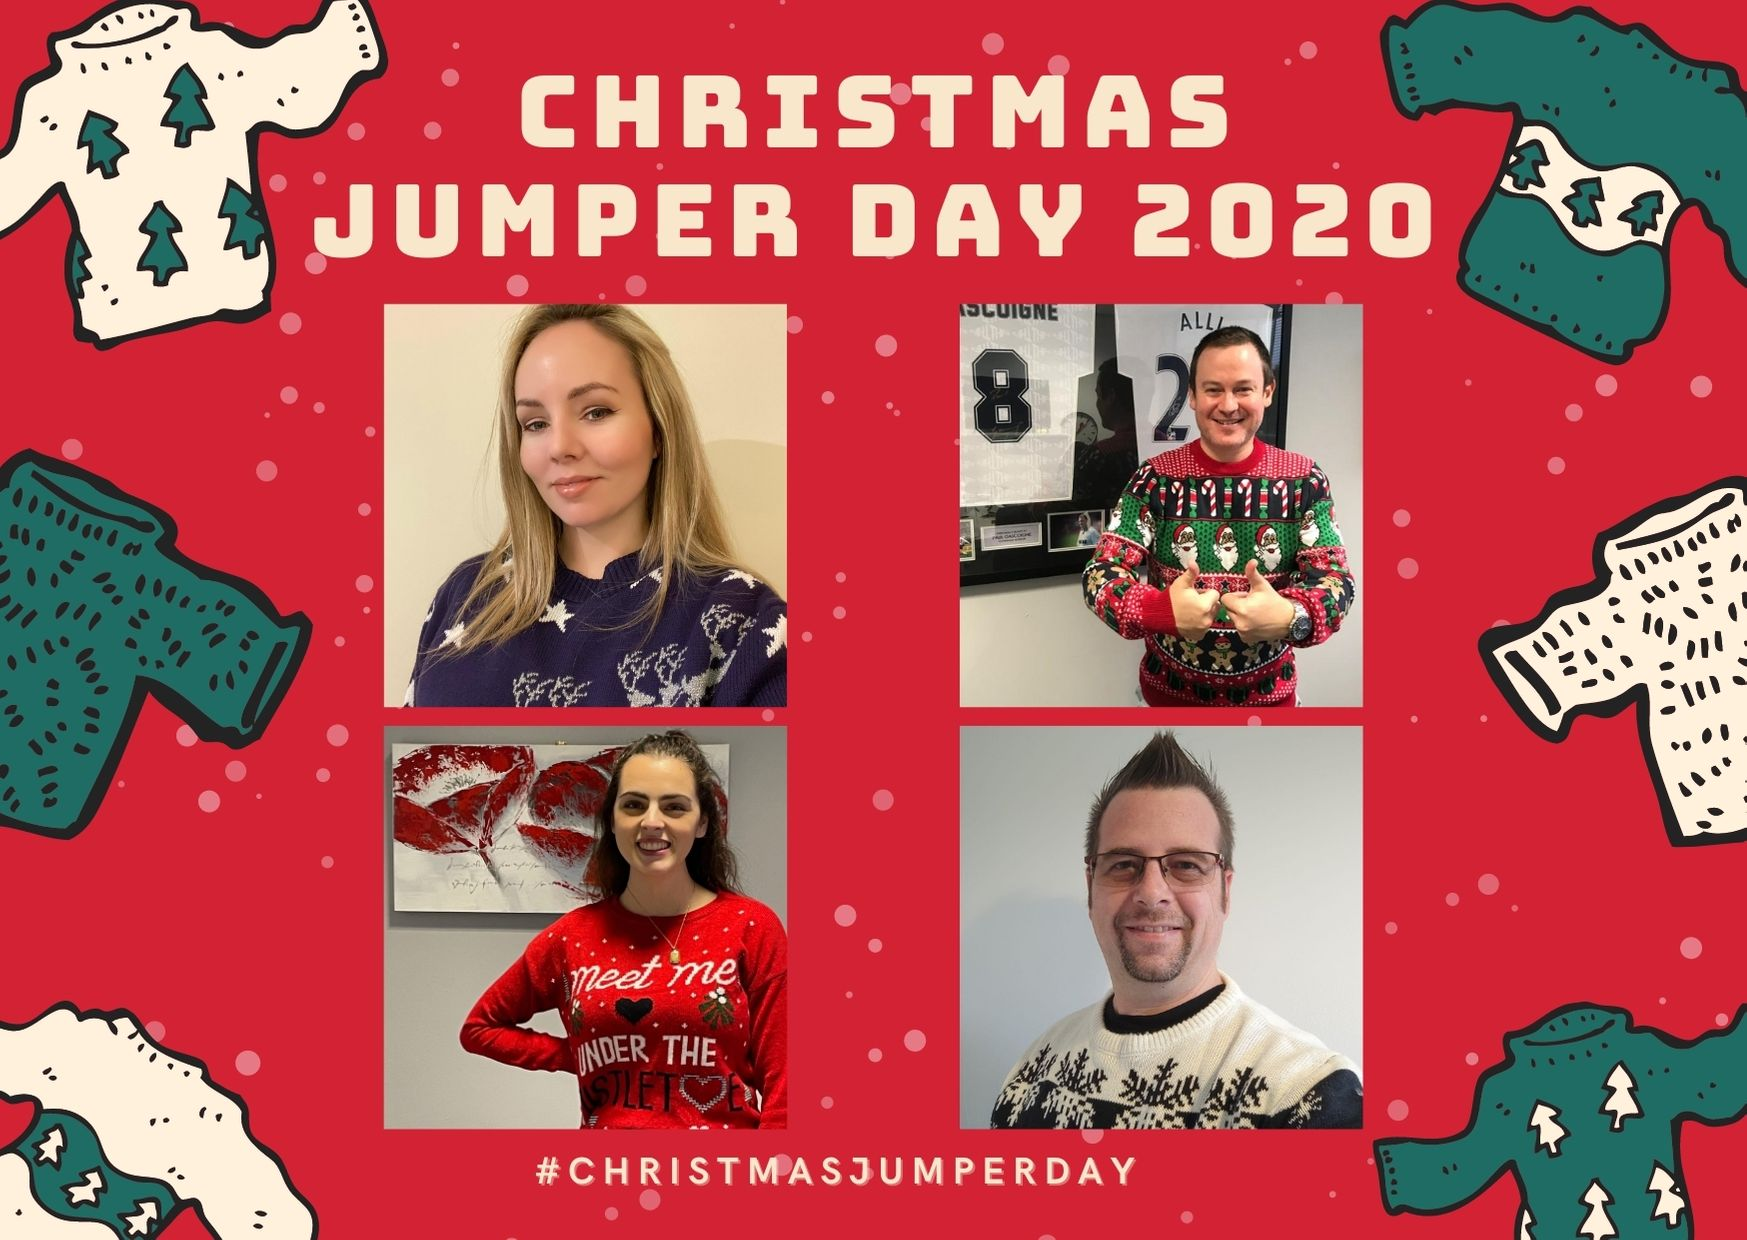 A red back ground whit opaque snowflakes and 6 green and white Christmas jumpers around the edge. Title reads 'Christmas Jumper day 2021'. Below are 4 selfies of staff members wearing their Christmas jumpers, followed by the #Christmasjumperday